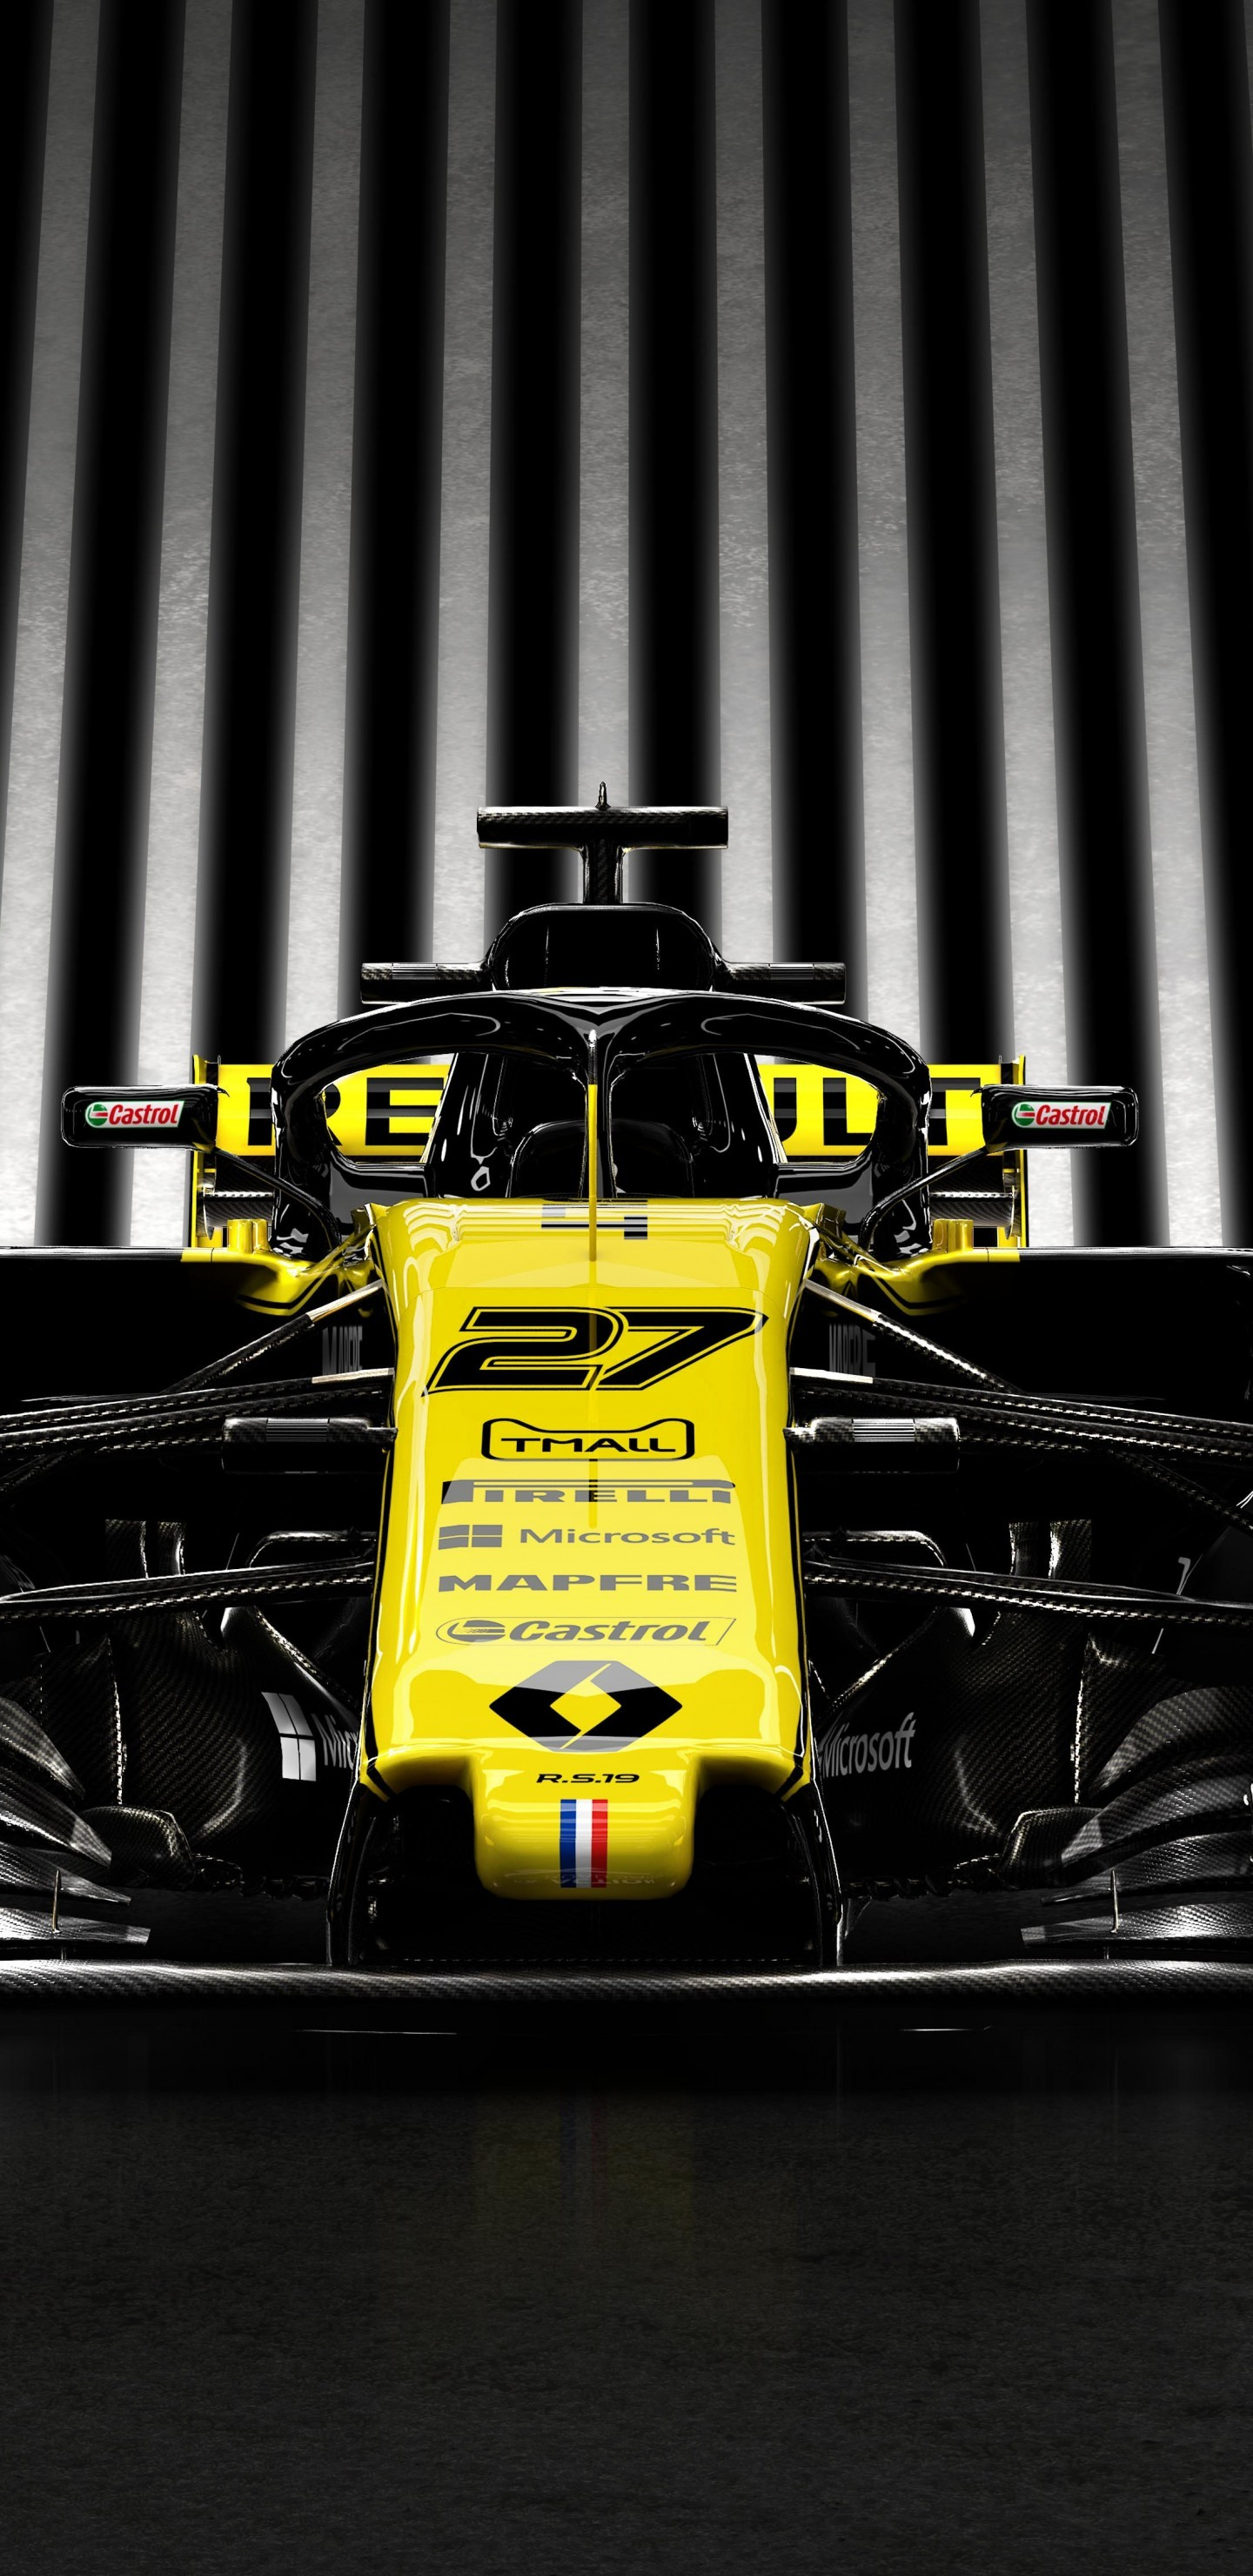 Download 1440x2960 Renault Rs19 Formula 1 Racing Cars Yellow 1440x2960